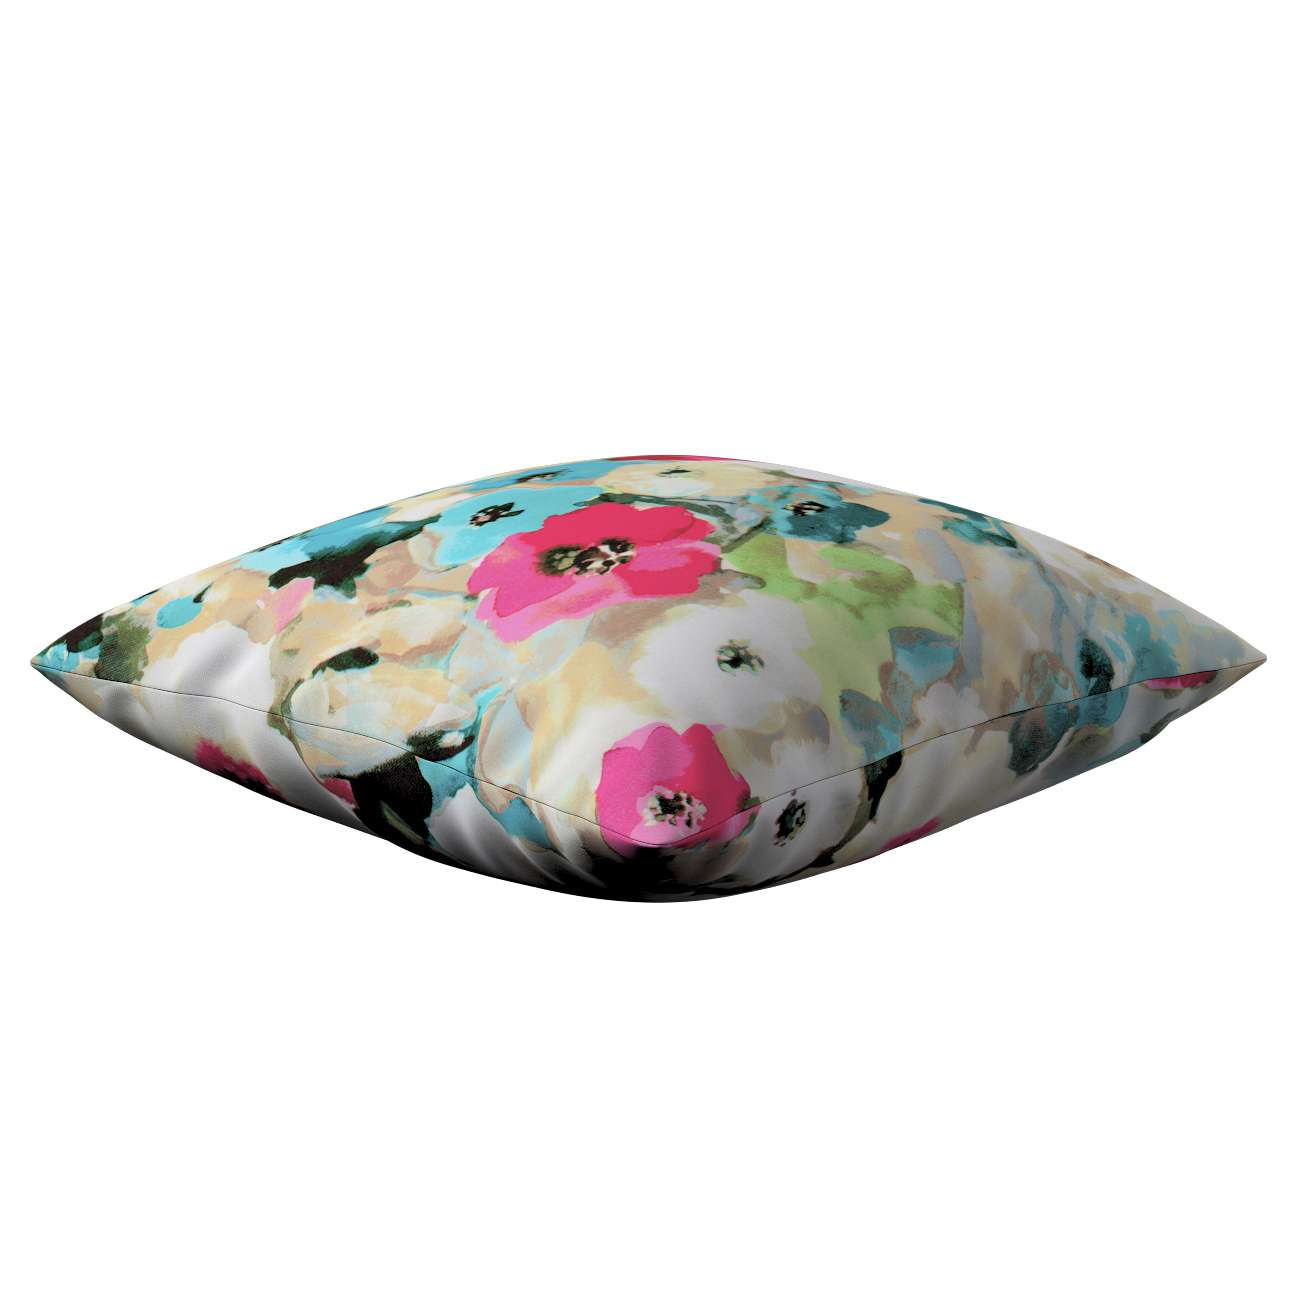 Kinga cushion cover in collection Monet, fabric: 140-08